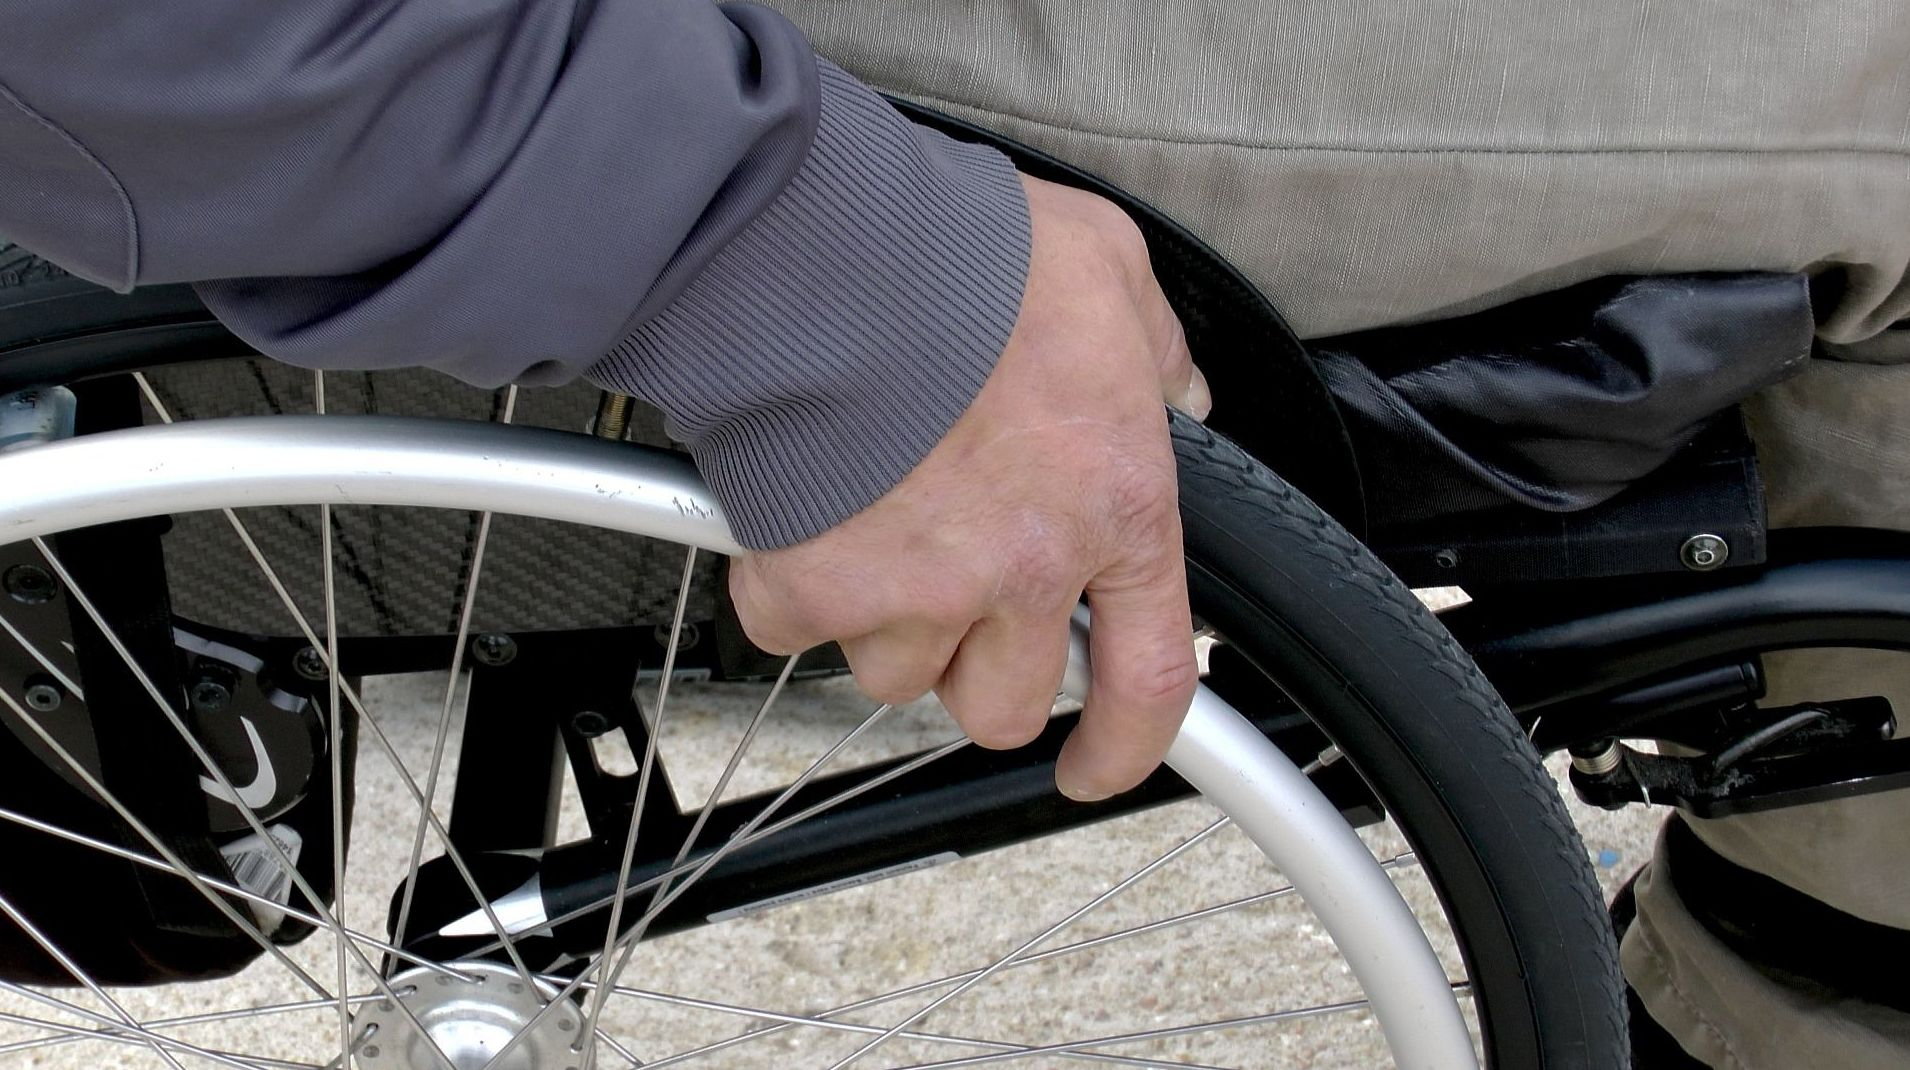 Cab adapted for wheelchairs in Torrevieja